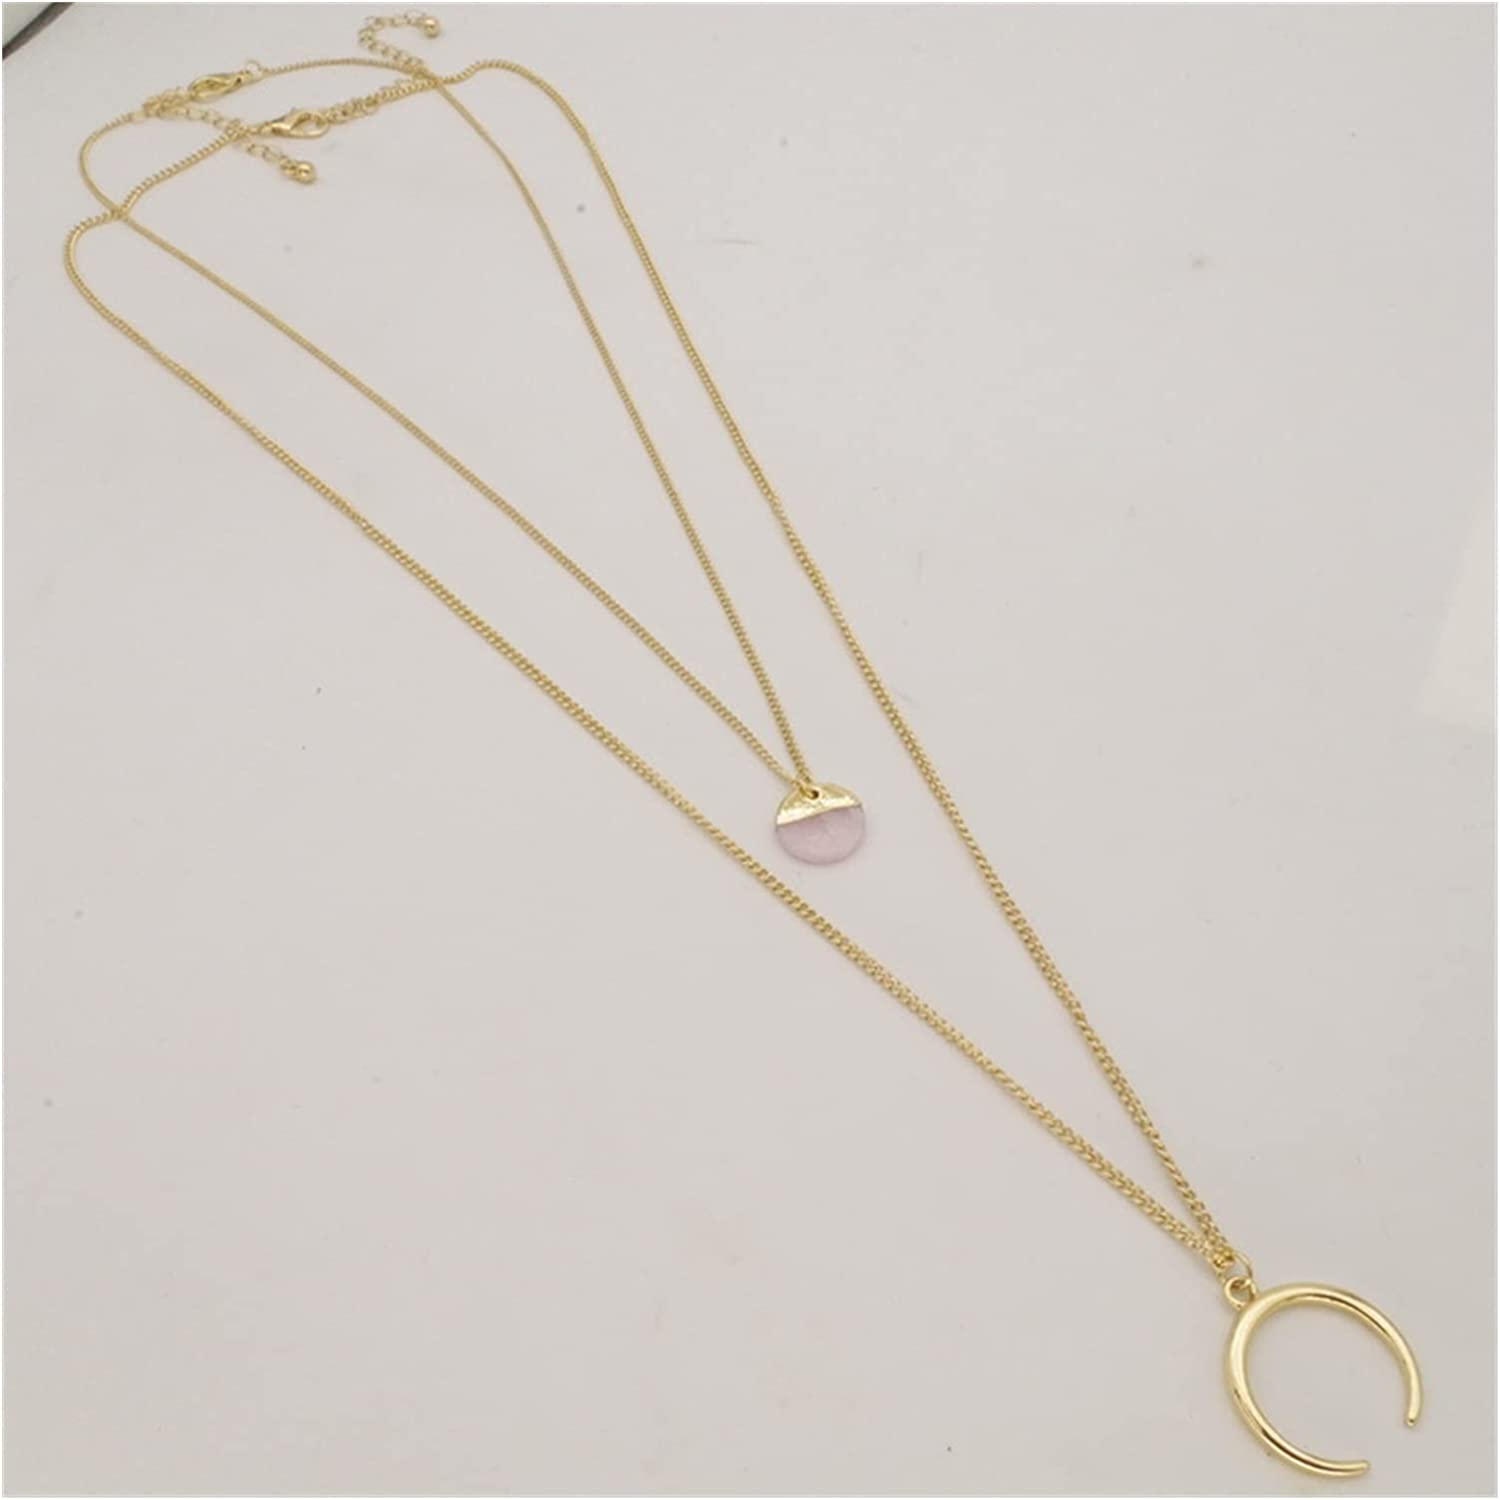 Stone Pendant Necklaces Woman Double Layered Collar Chain Necklace Accessories Pendant